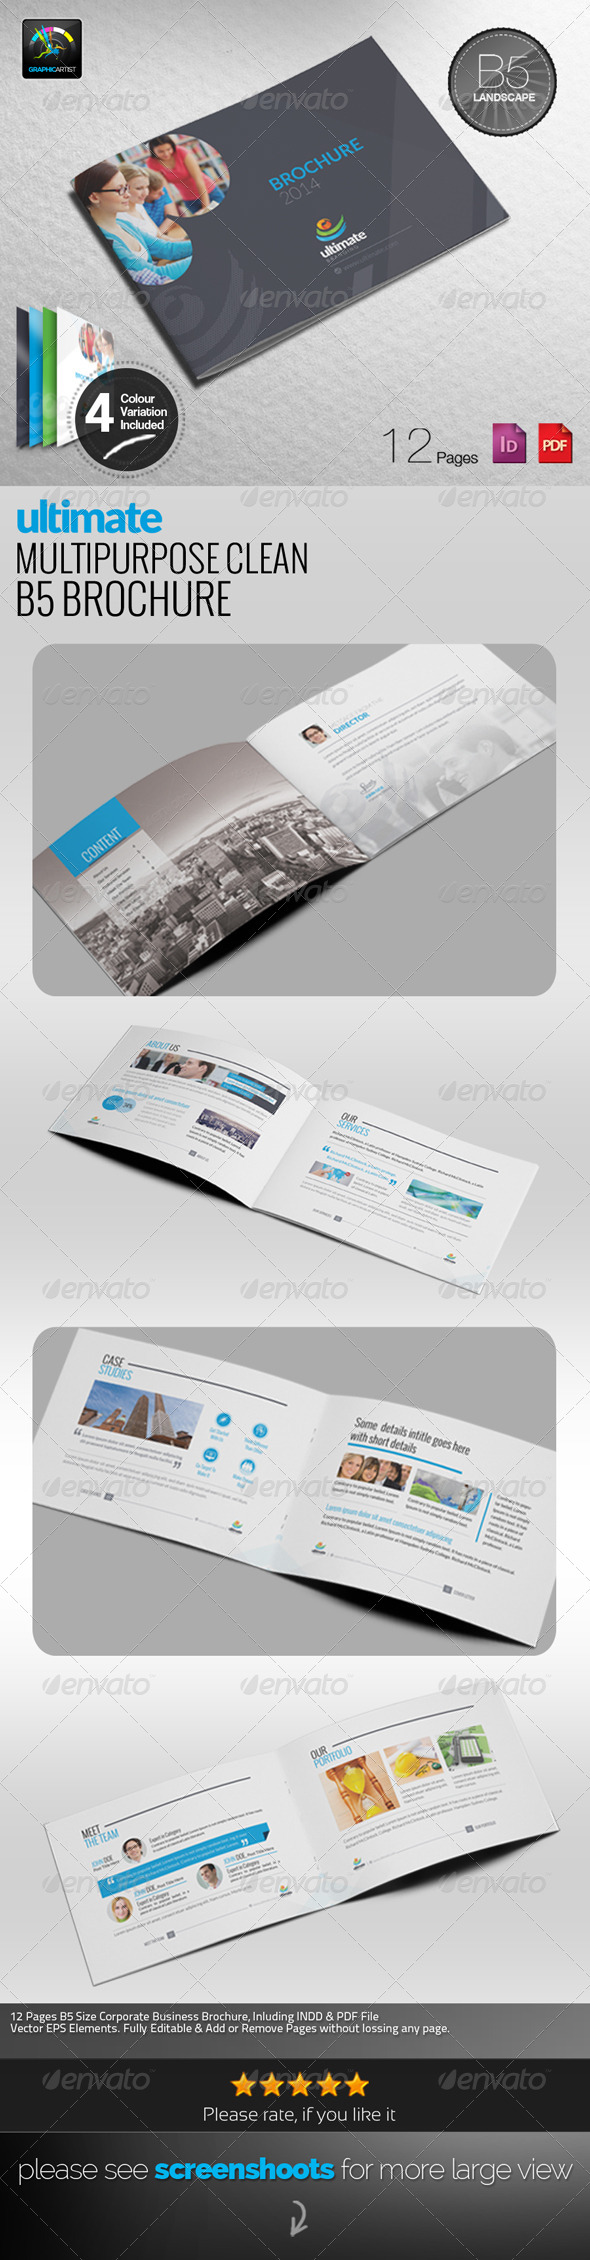 GraphicRiver Ultimate Multipurpose B5 Brochure 6583823